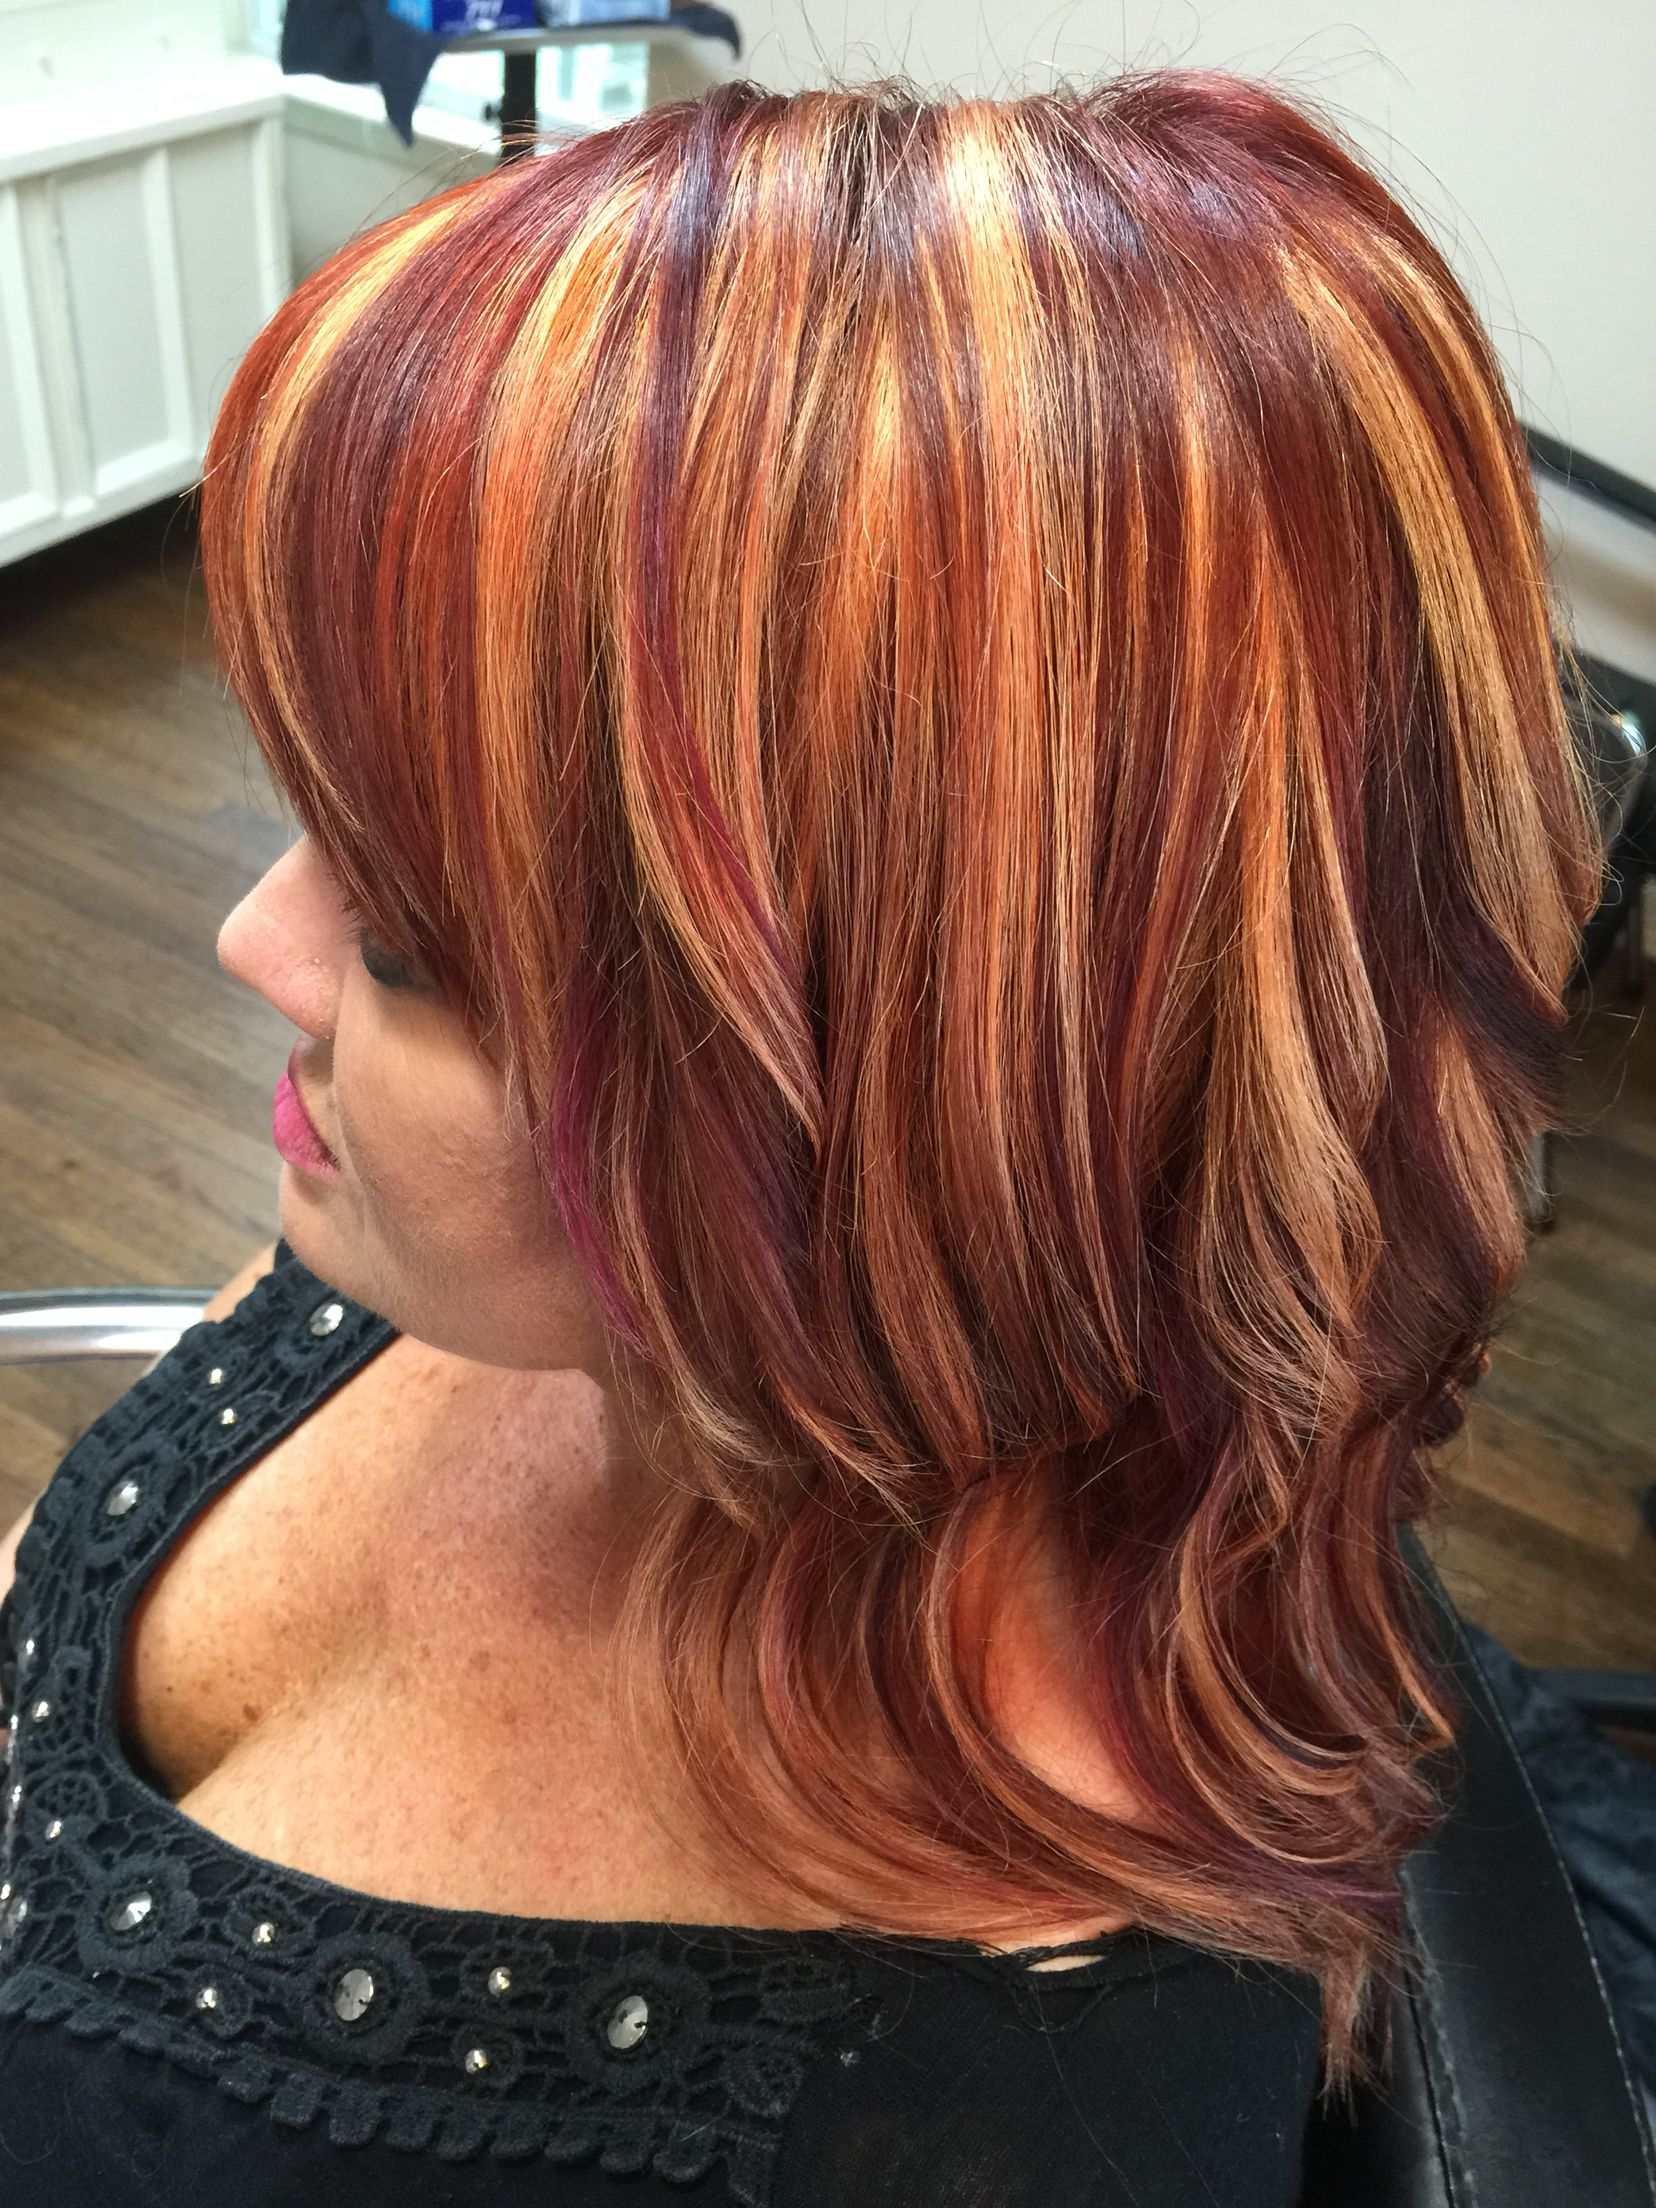 Pin by Cameron Amthor on for the love of hair 3 Pinterest